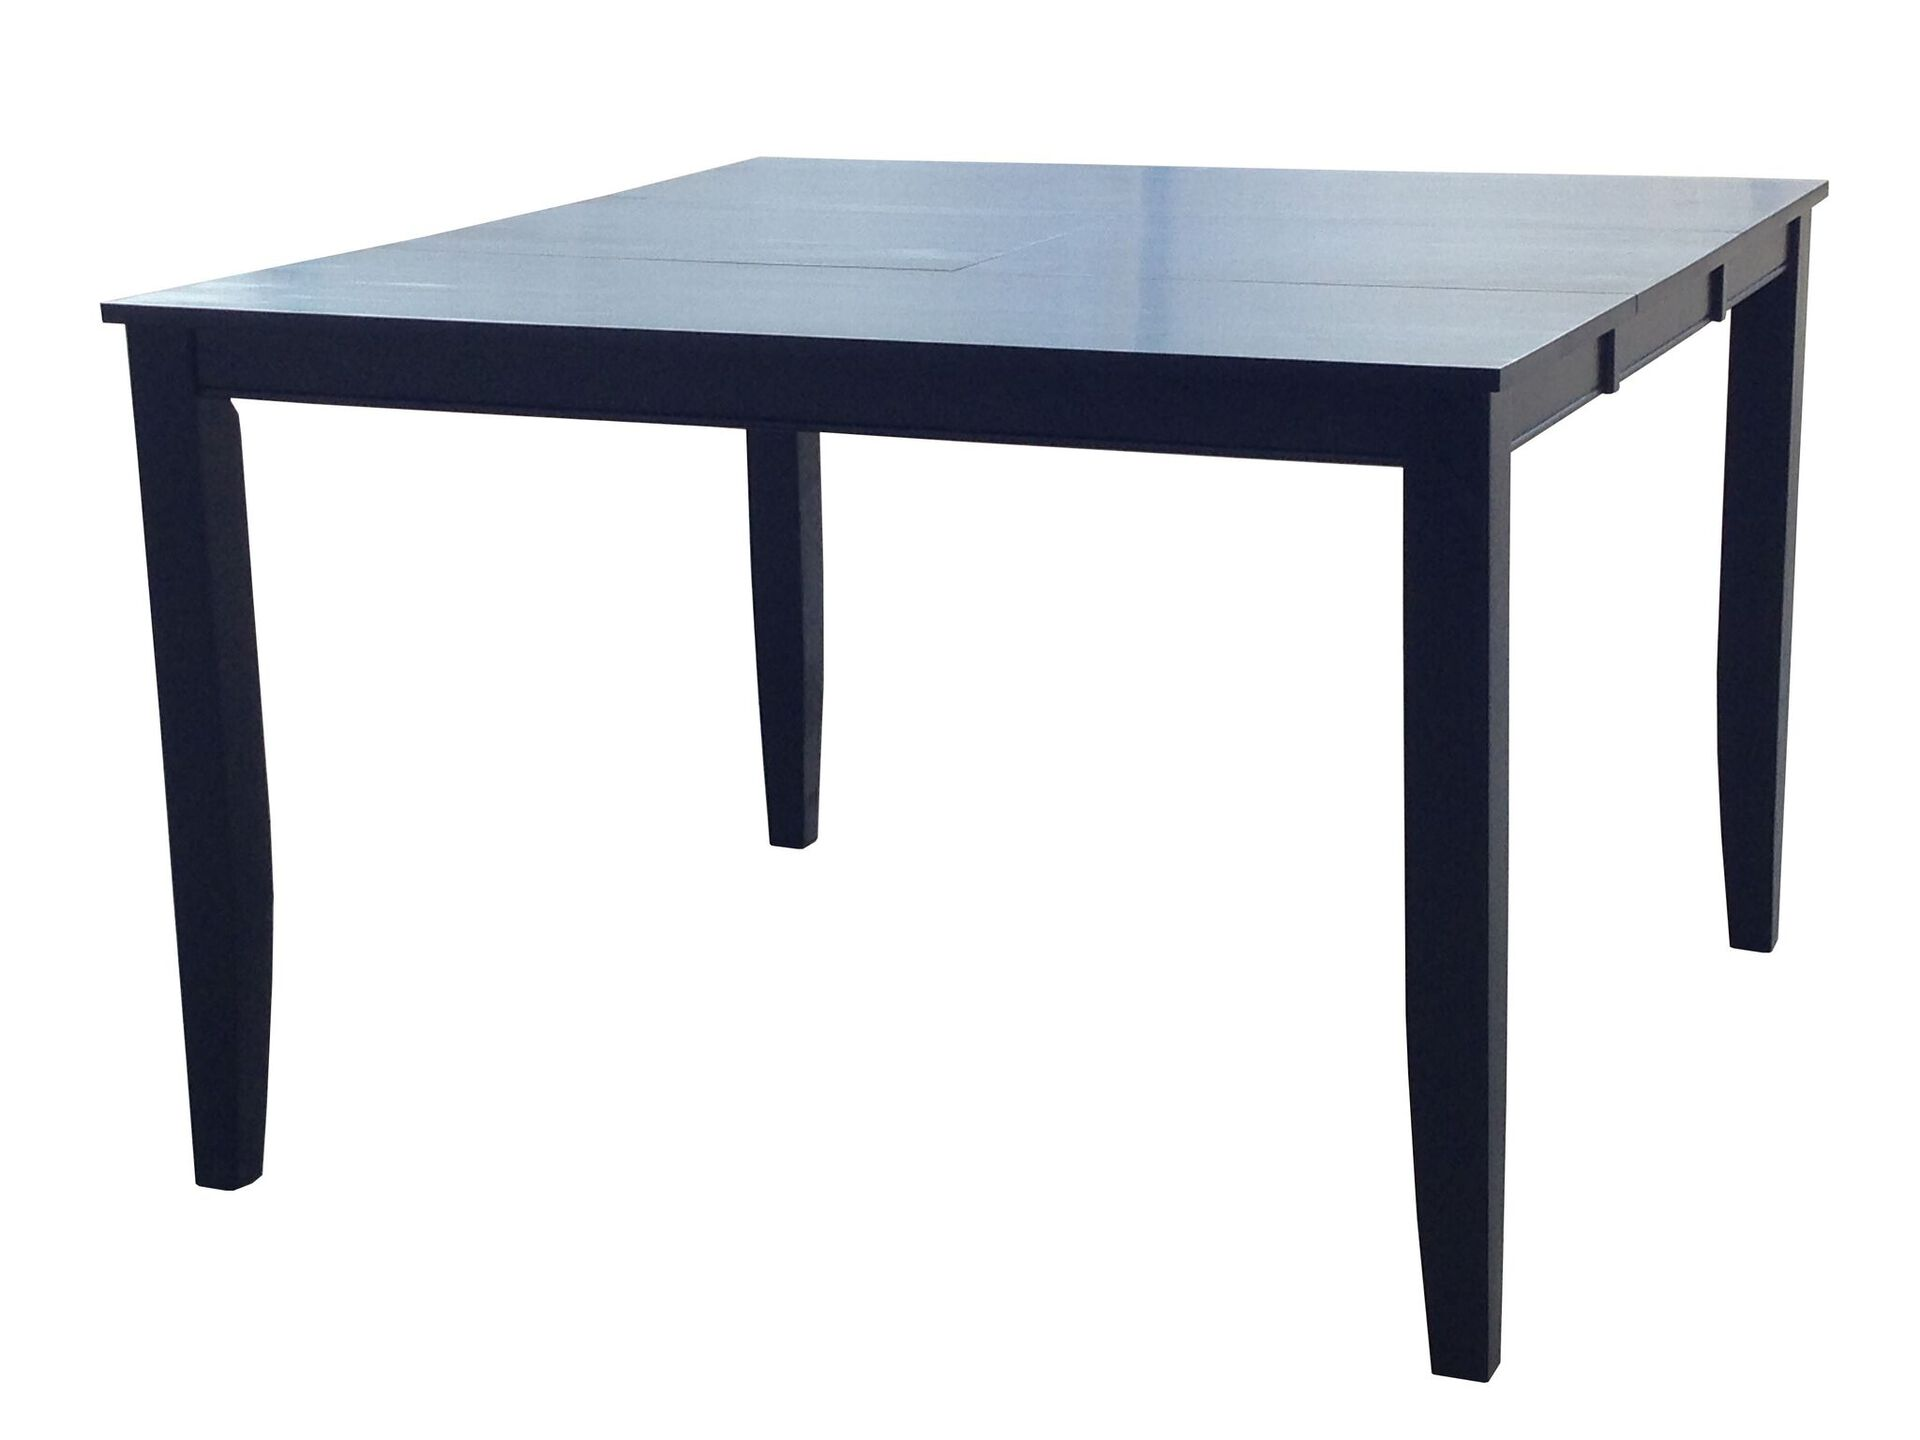 Fullerton counter height table in black trithi furniture Counter height bench